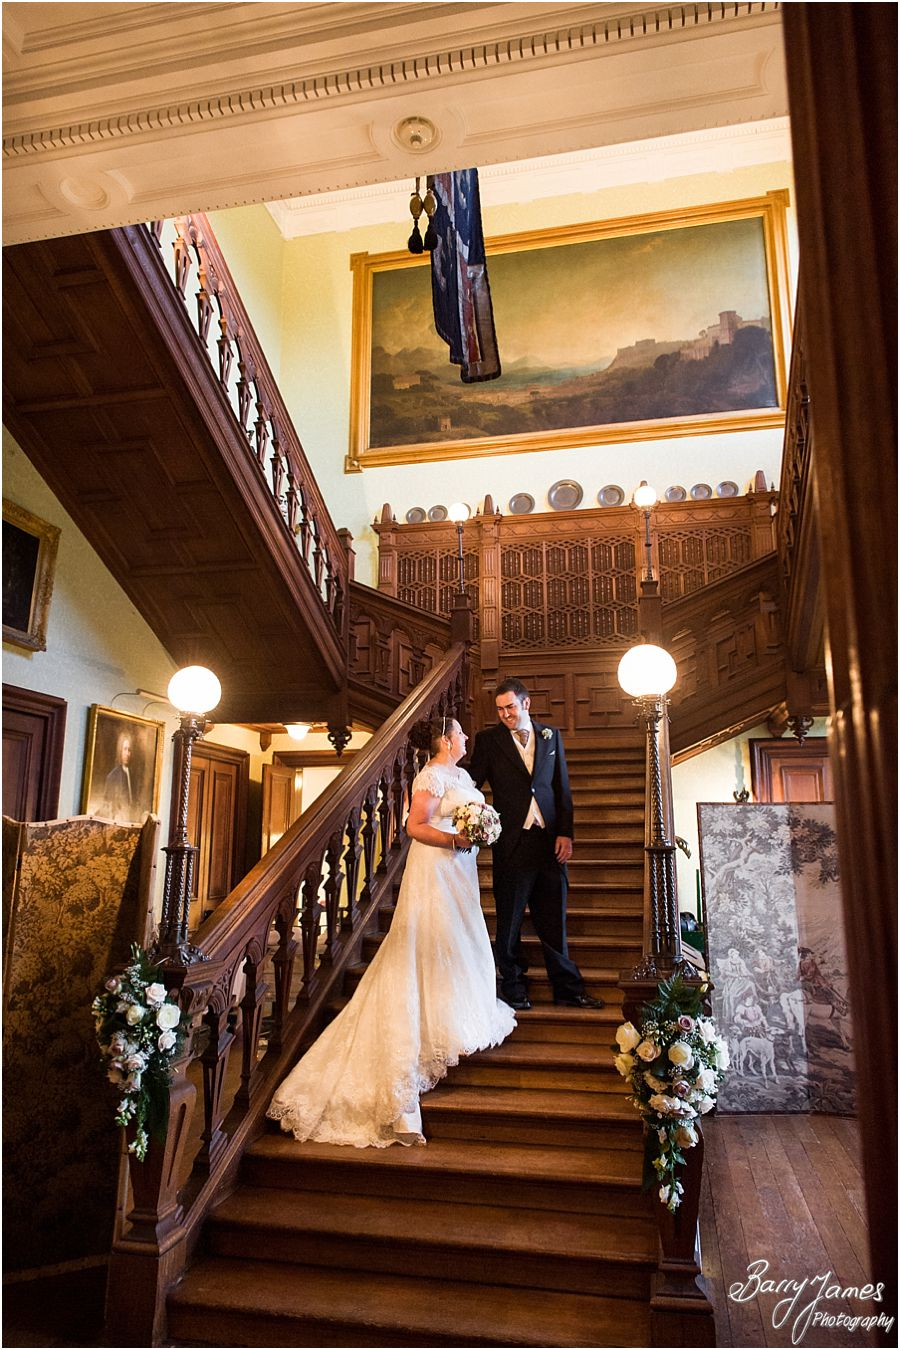 Elegant portraits on the Grand Staircase at Sandon Hall in Stafford by Stafford Recommended Wedding Photographer Barry James